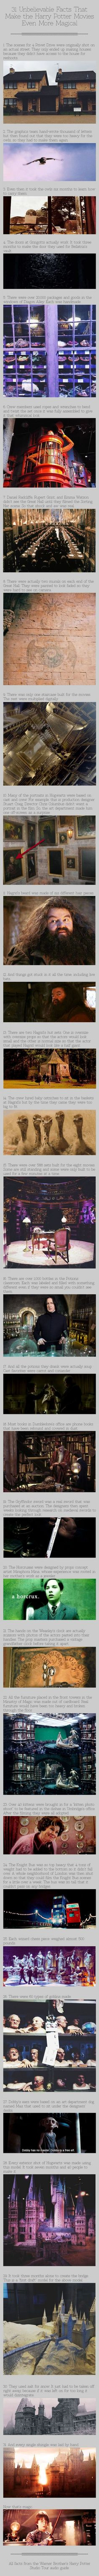 31 Unbelieveable Facts That Make The Harry Potter Movies Even More Magical